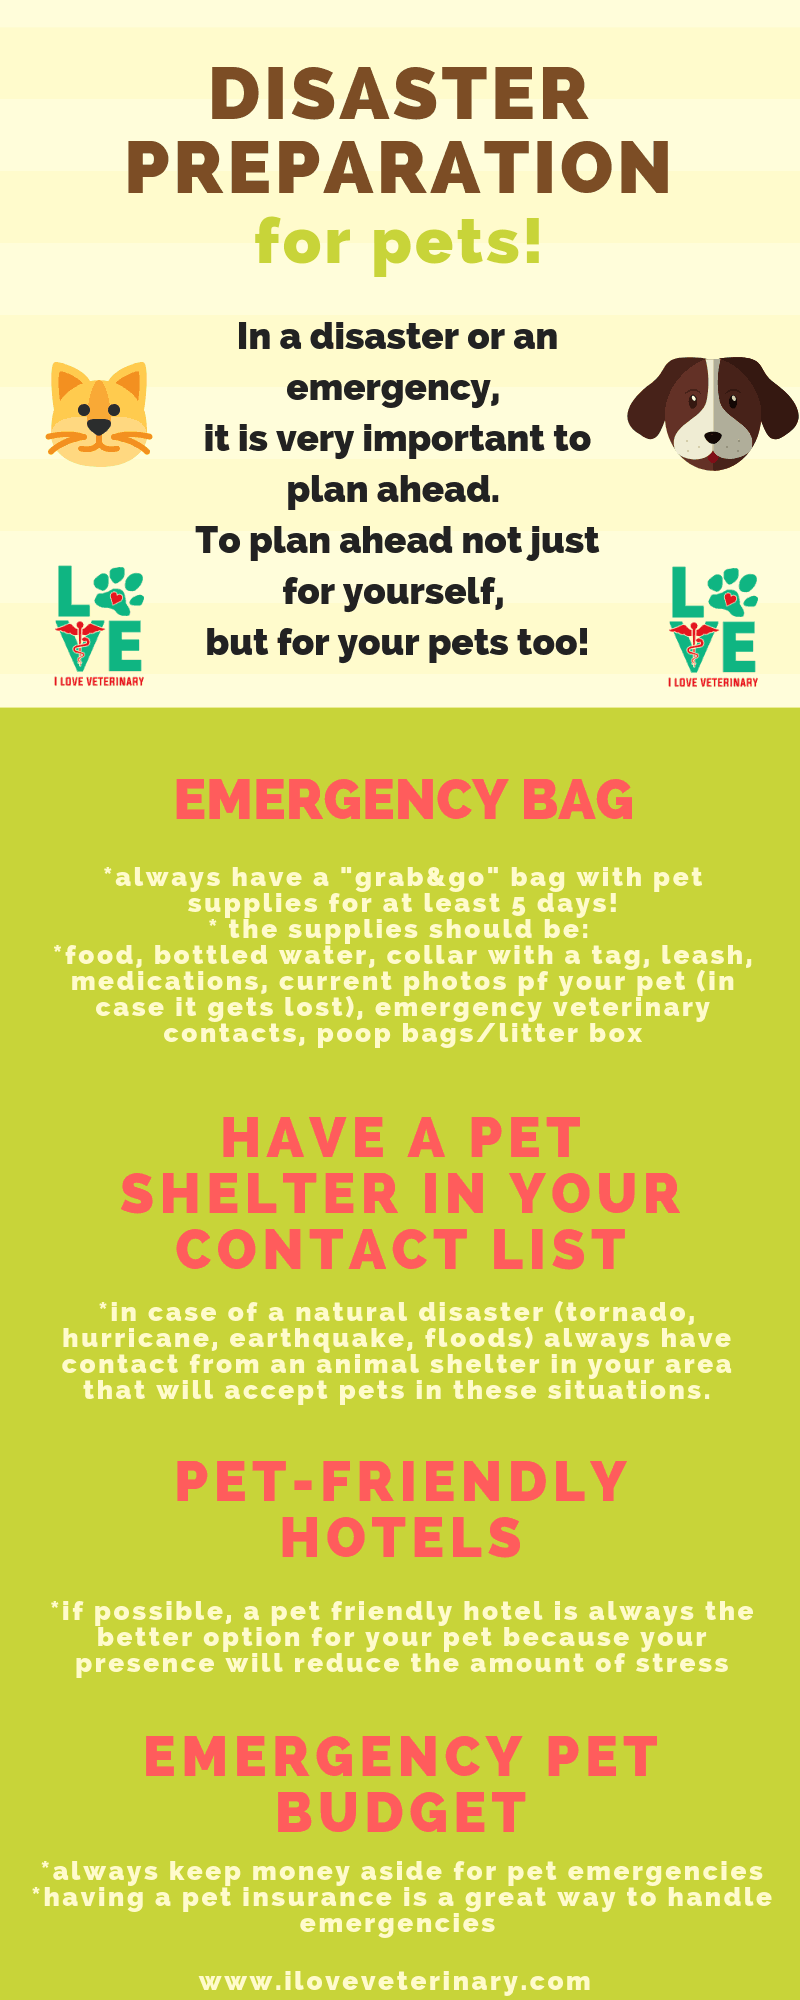 Disaster preparation for pets infographic